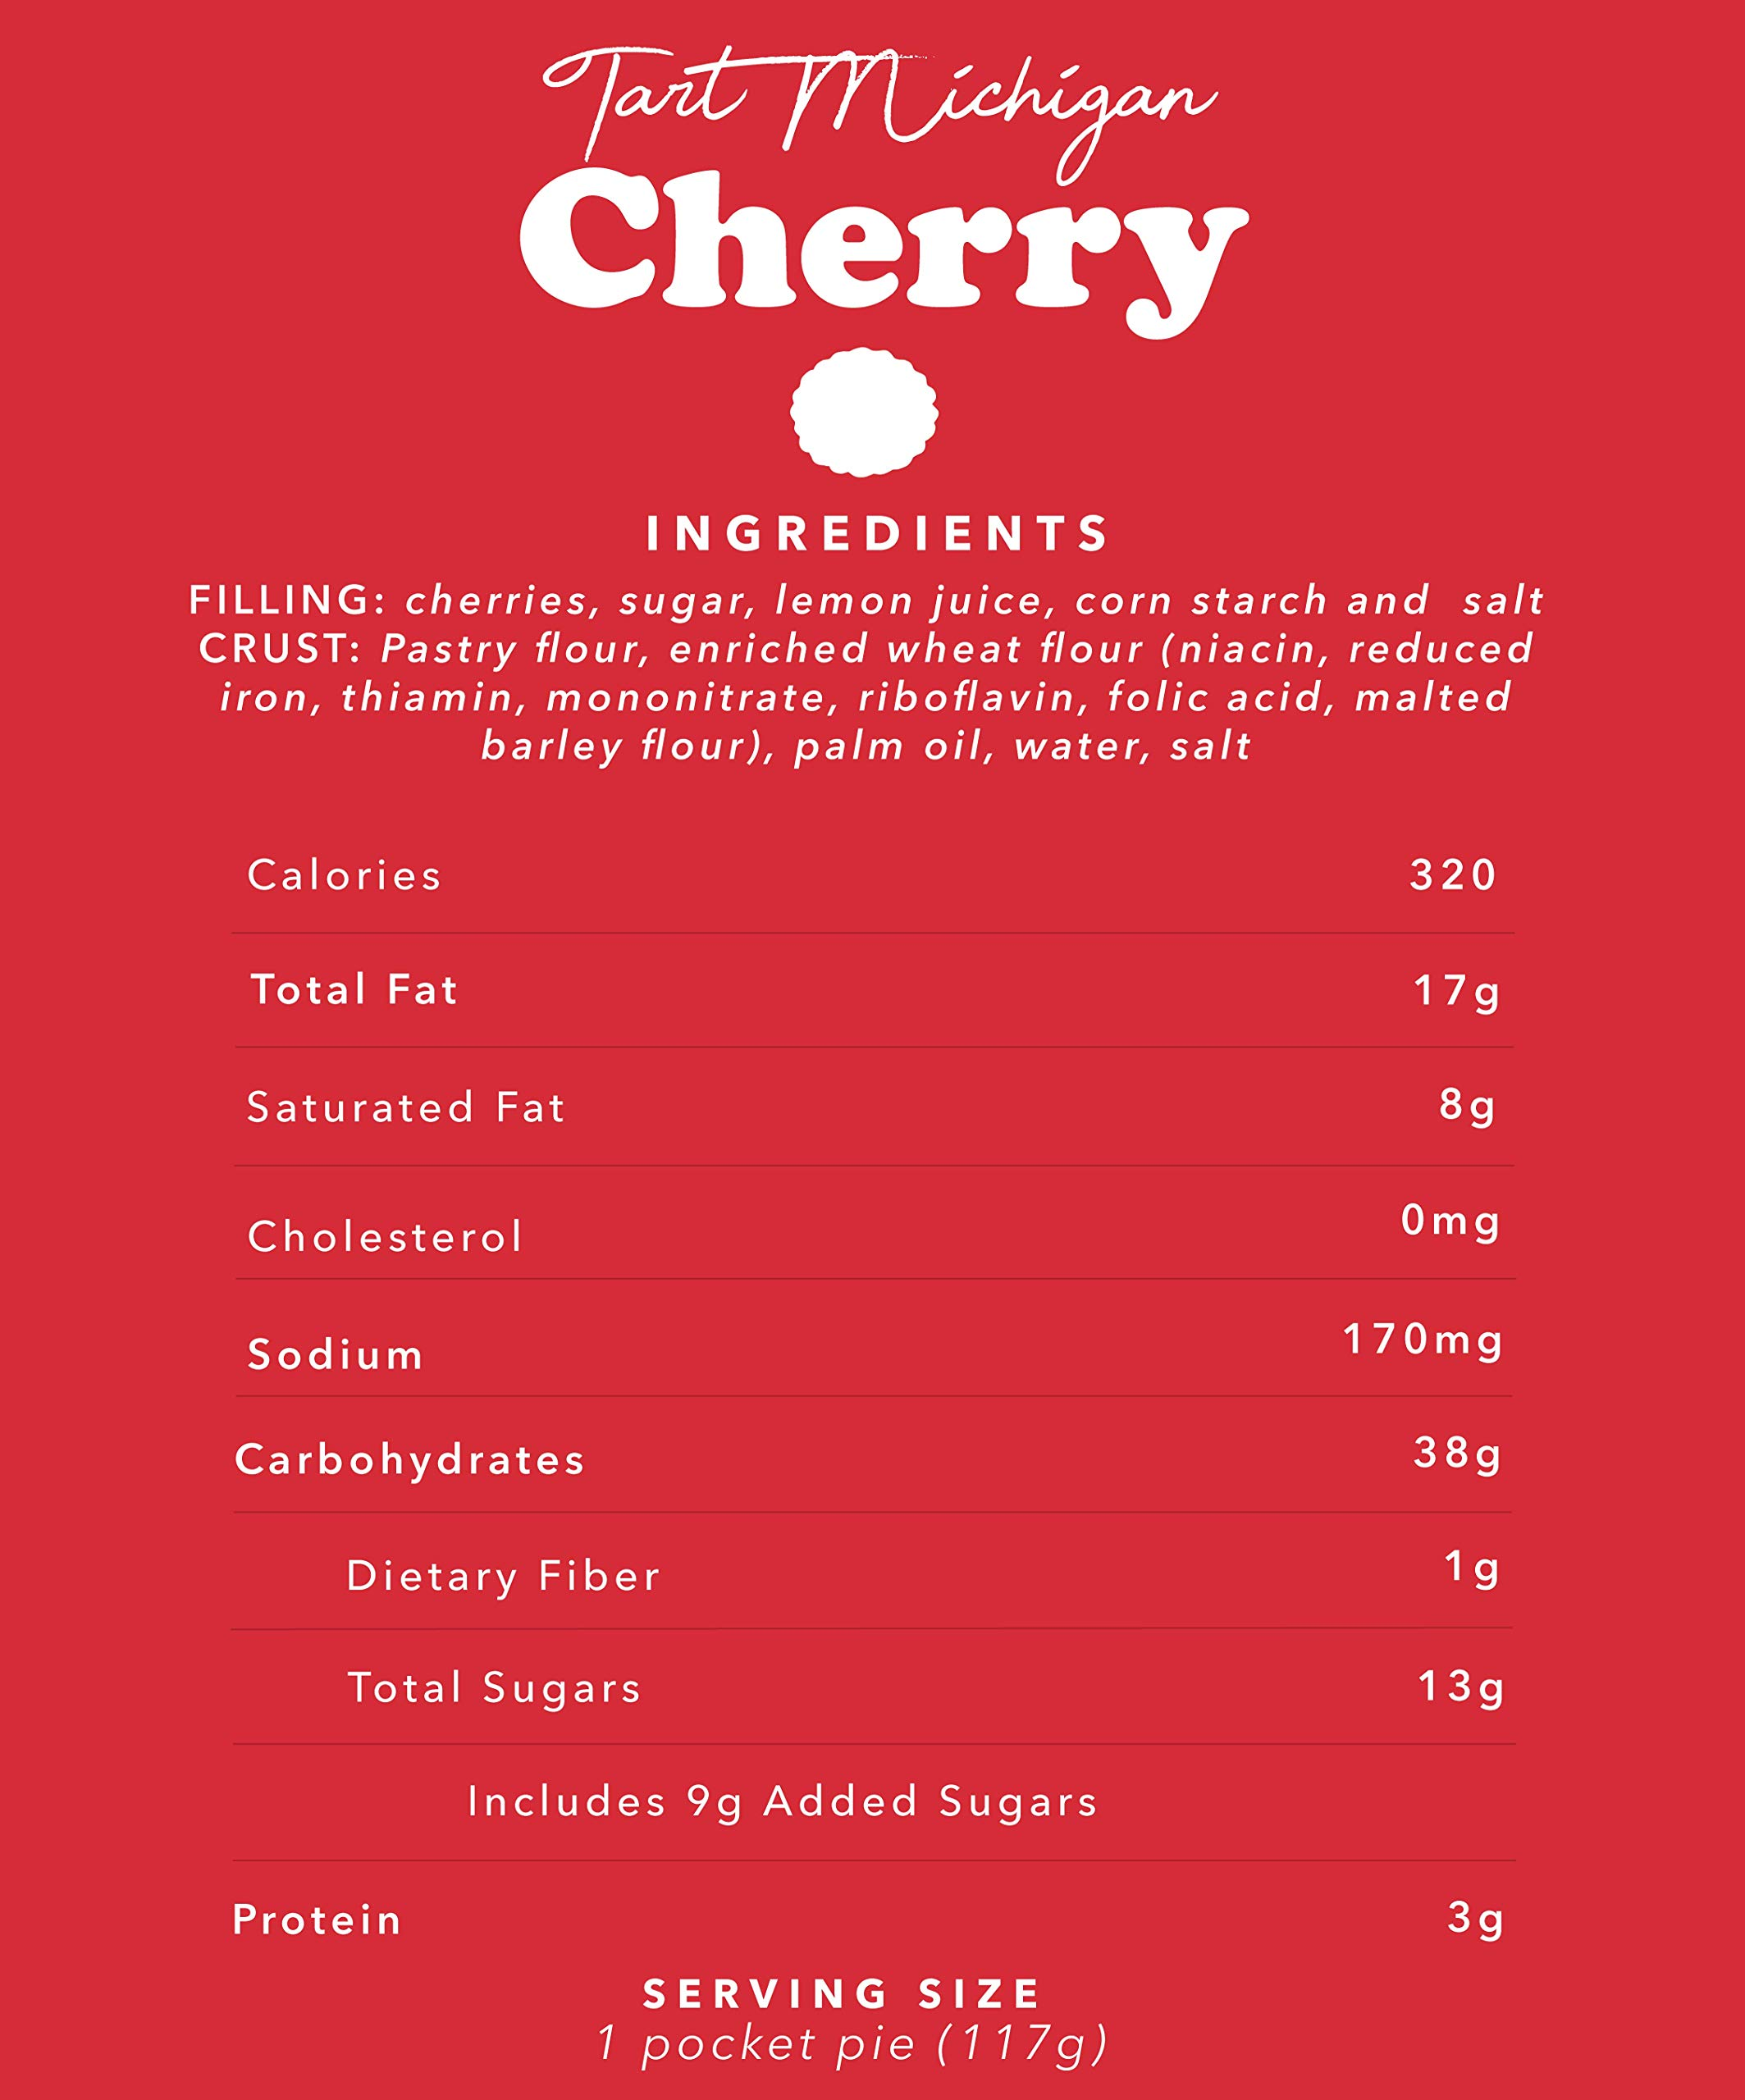 Mamie's 12 Pack Melt-in-Your-Mouth Single Serving Cherry Pies, Individually Packaged 4.5oz Pocket Pies, Preservative Free, Shipped Frozen and Ready to Bake, Made in USA. by Mamie's Pies (Image #6)